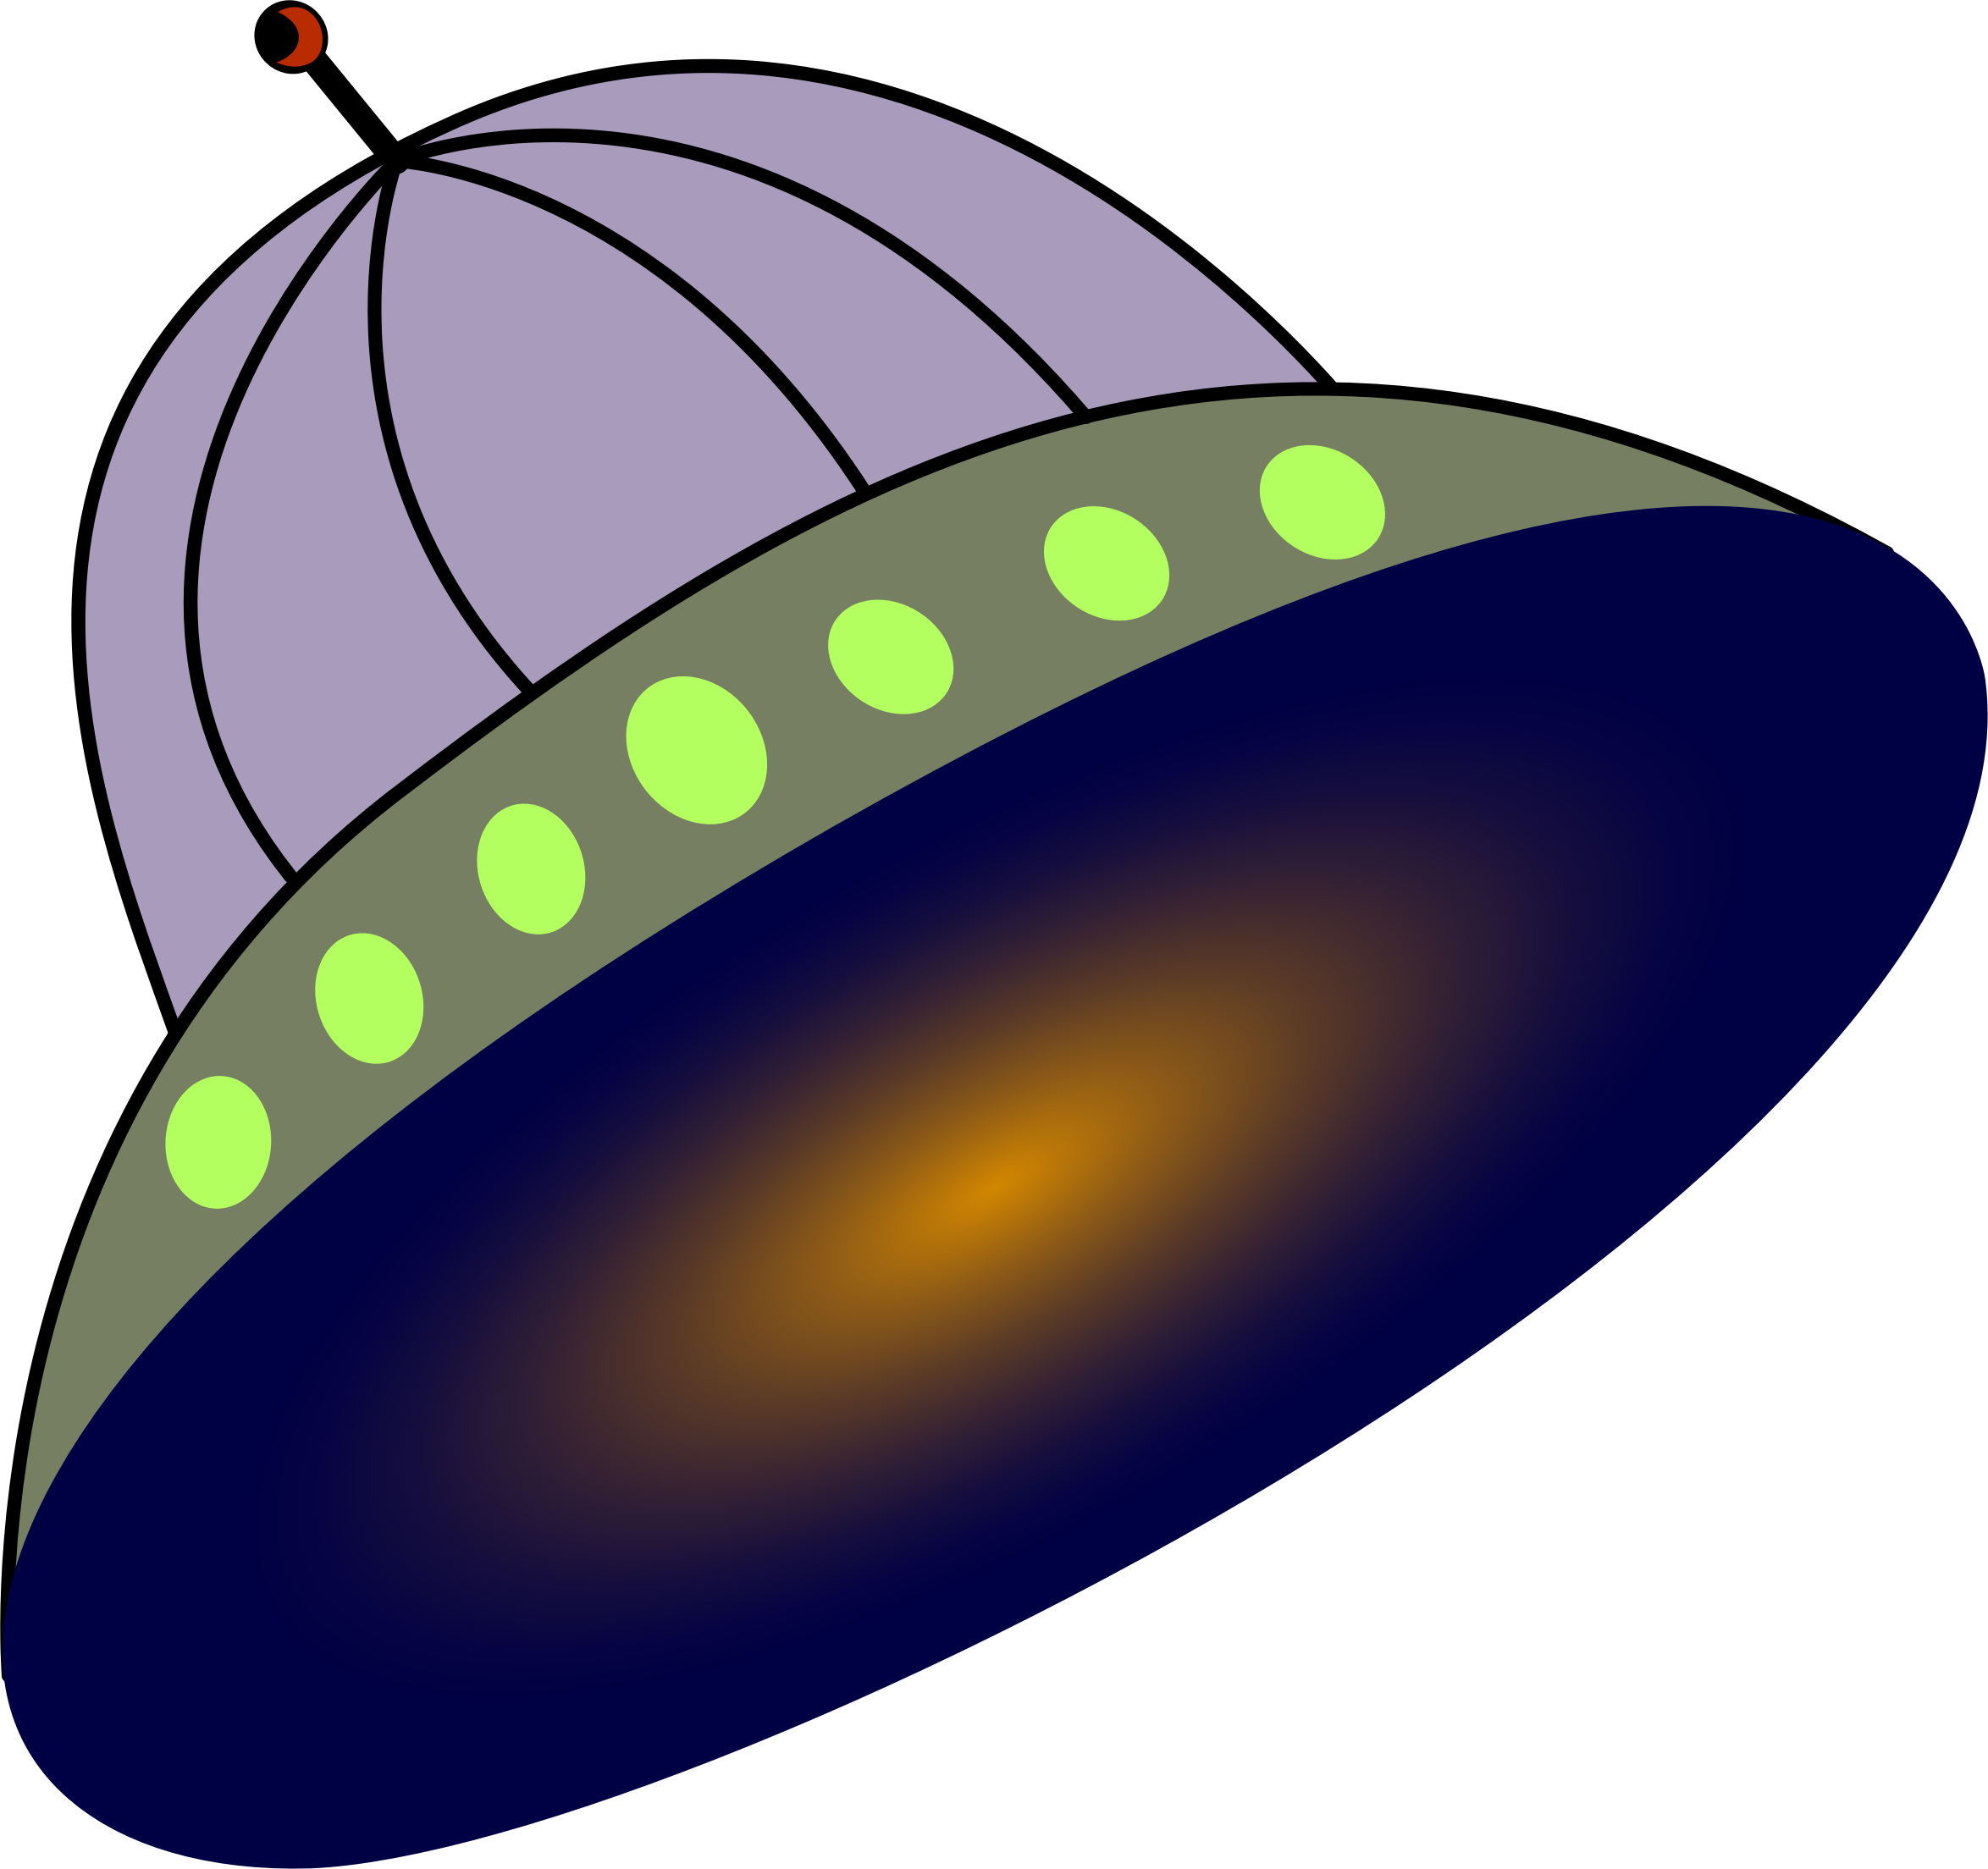 Big image png. Spaceship clipart flying saucer